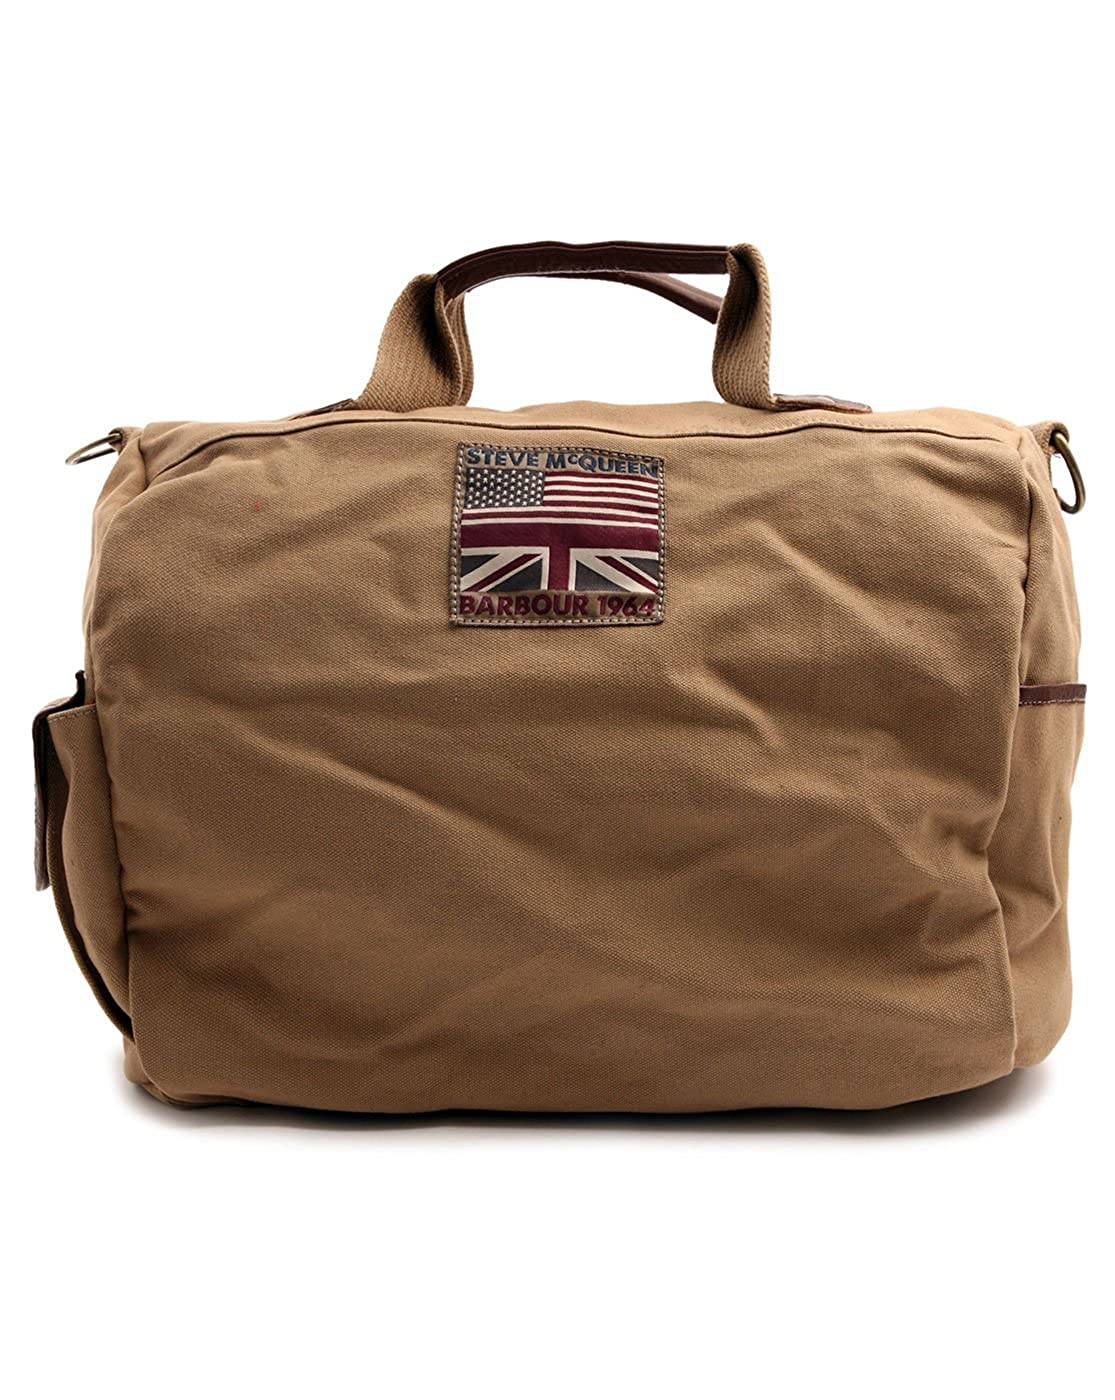 374006828e42 BARBOUR - Overnight Bags - Men - McQueen Sand Coloured Leather and Canvas  Weekend Bag for men - TU  Amazon.co.uk  Shoes   Bags